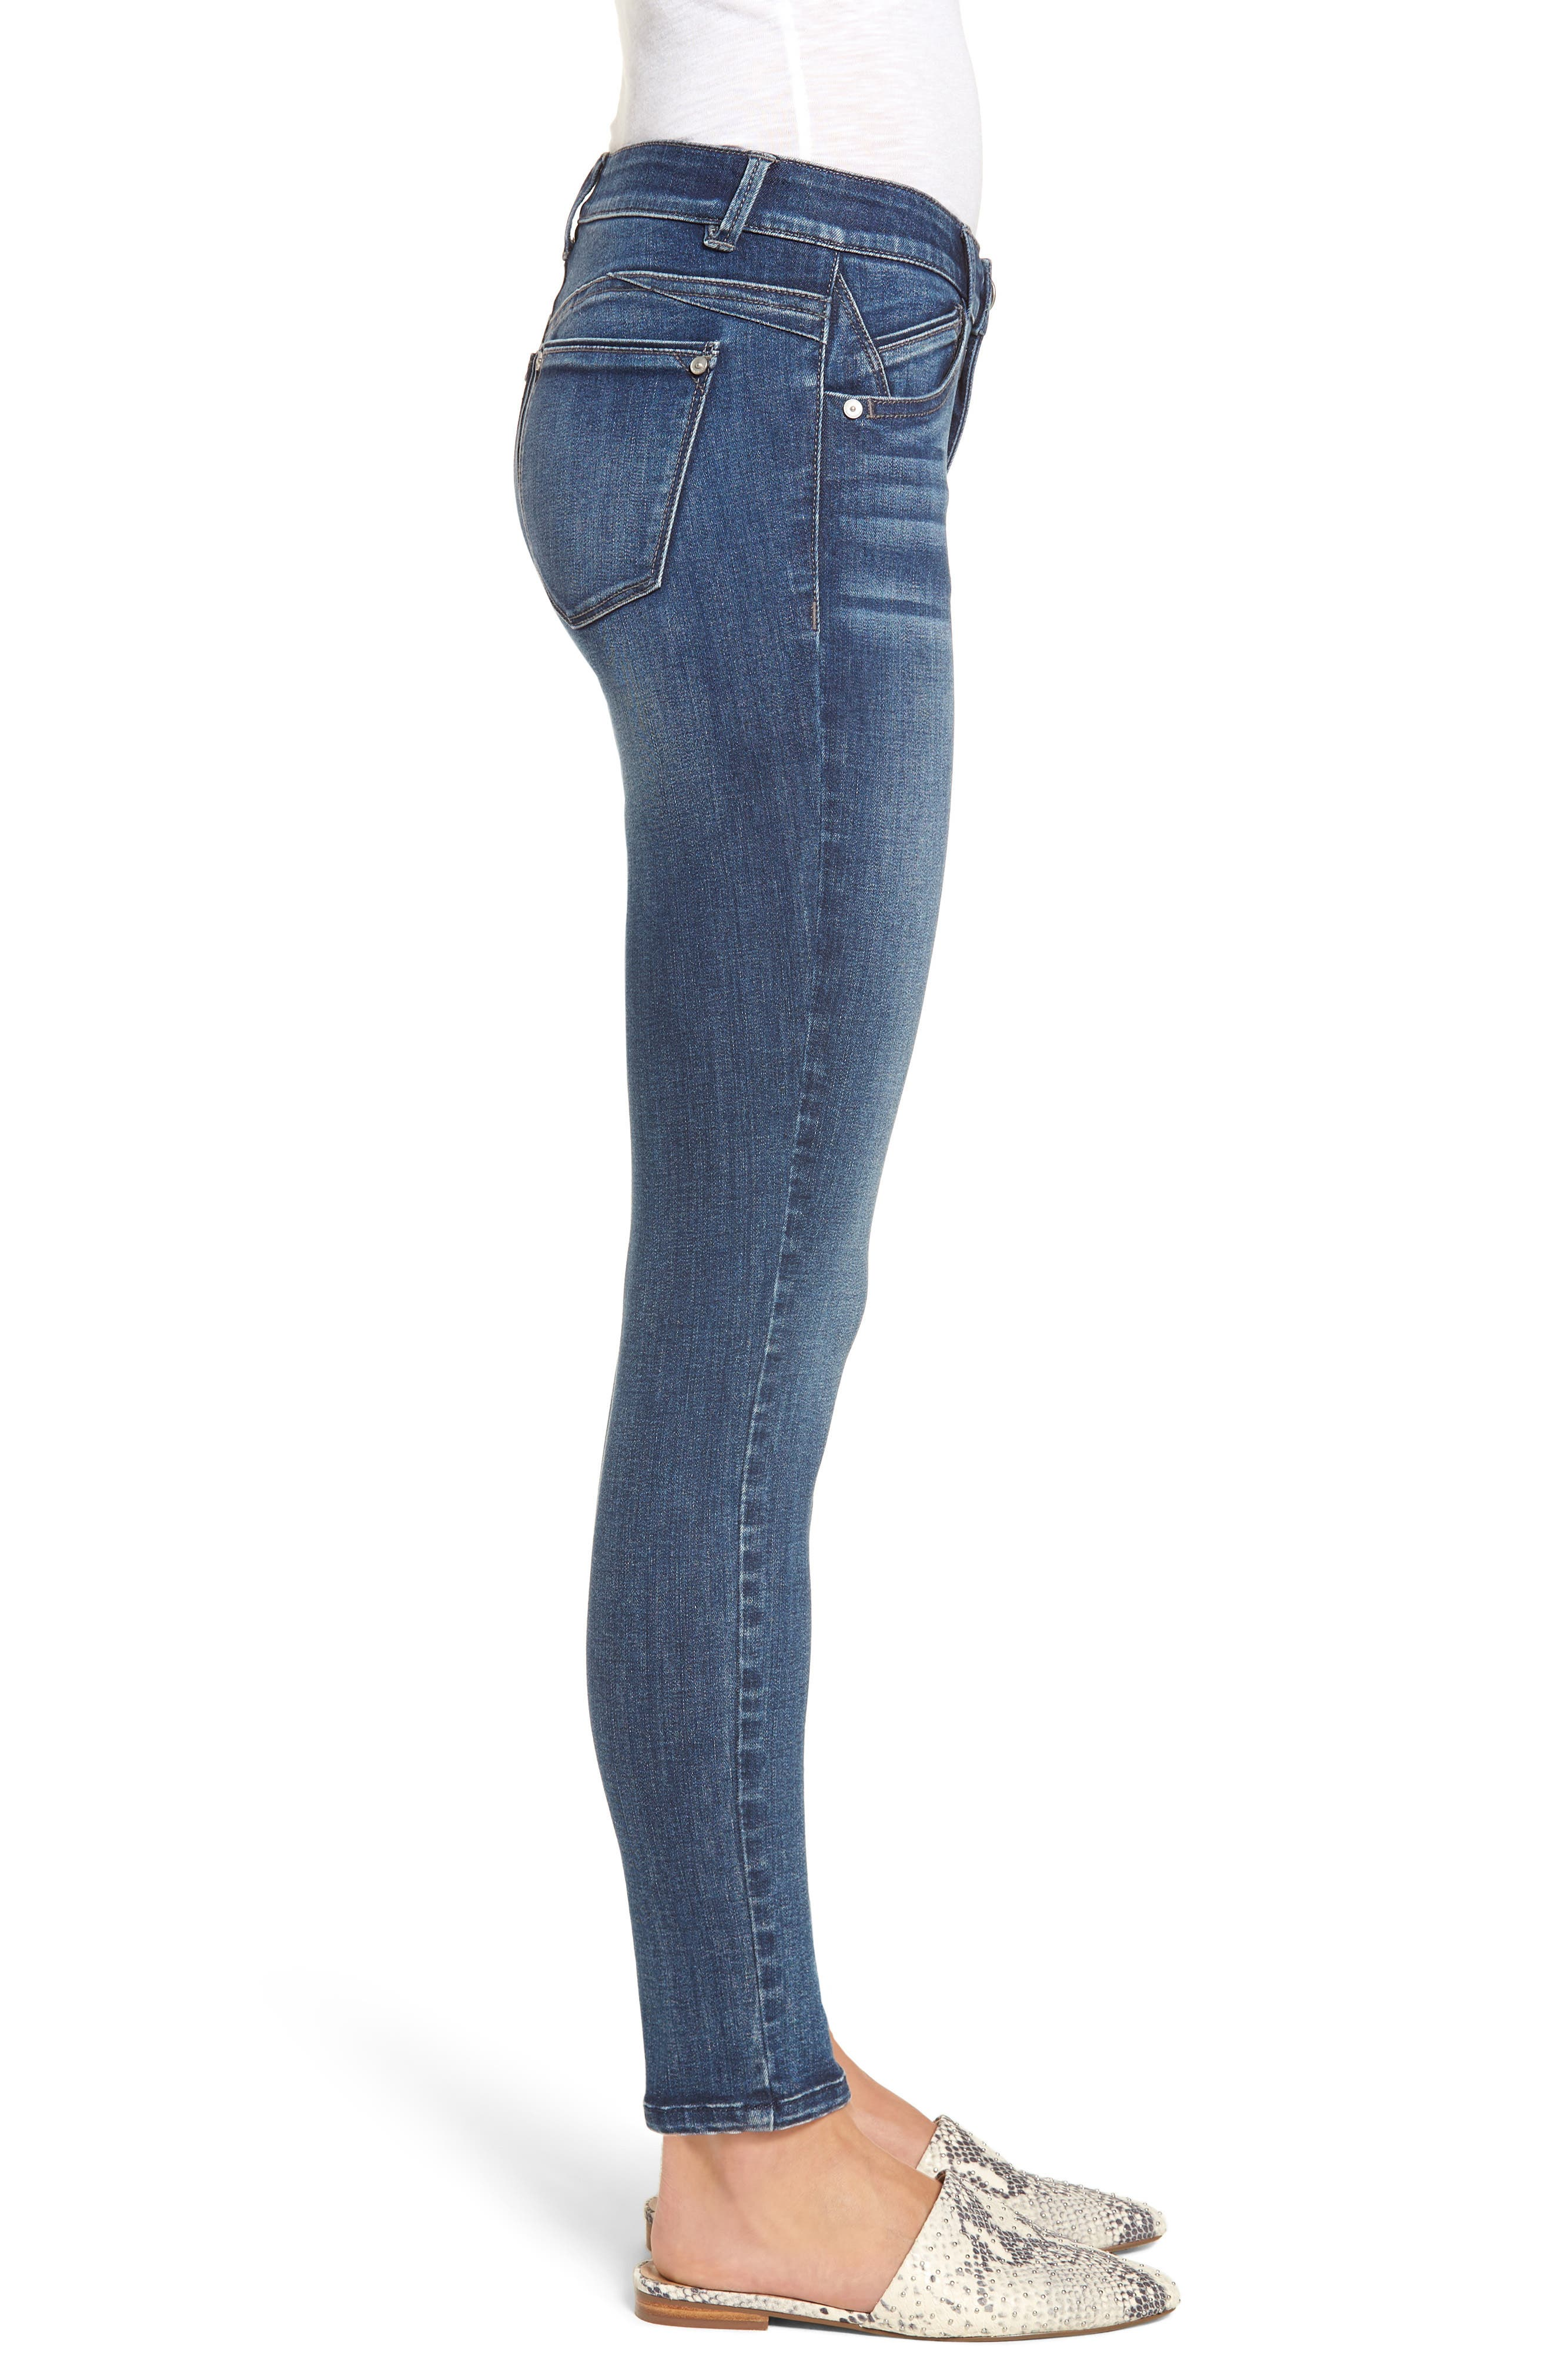 Ab-solution Ankle Skinny Jeans,                             Alternate thumbnail 3, color,                             BLUE